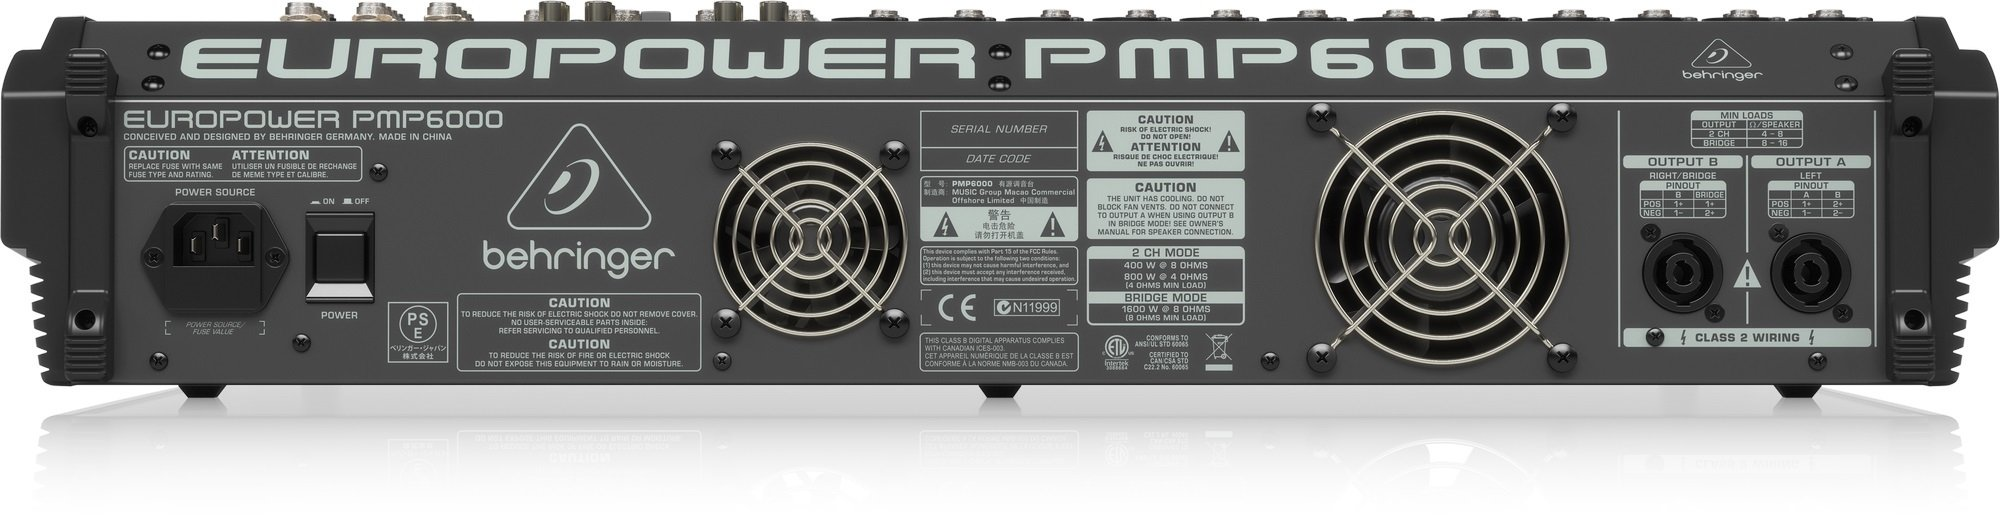 behringer pmp6000 20 channel 1600w powered mixer with effects full compass systems. Black Bedroom Furniture Sets. Home Design Ideas